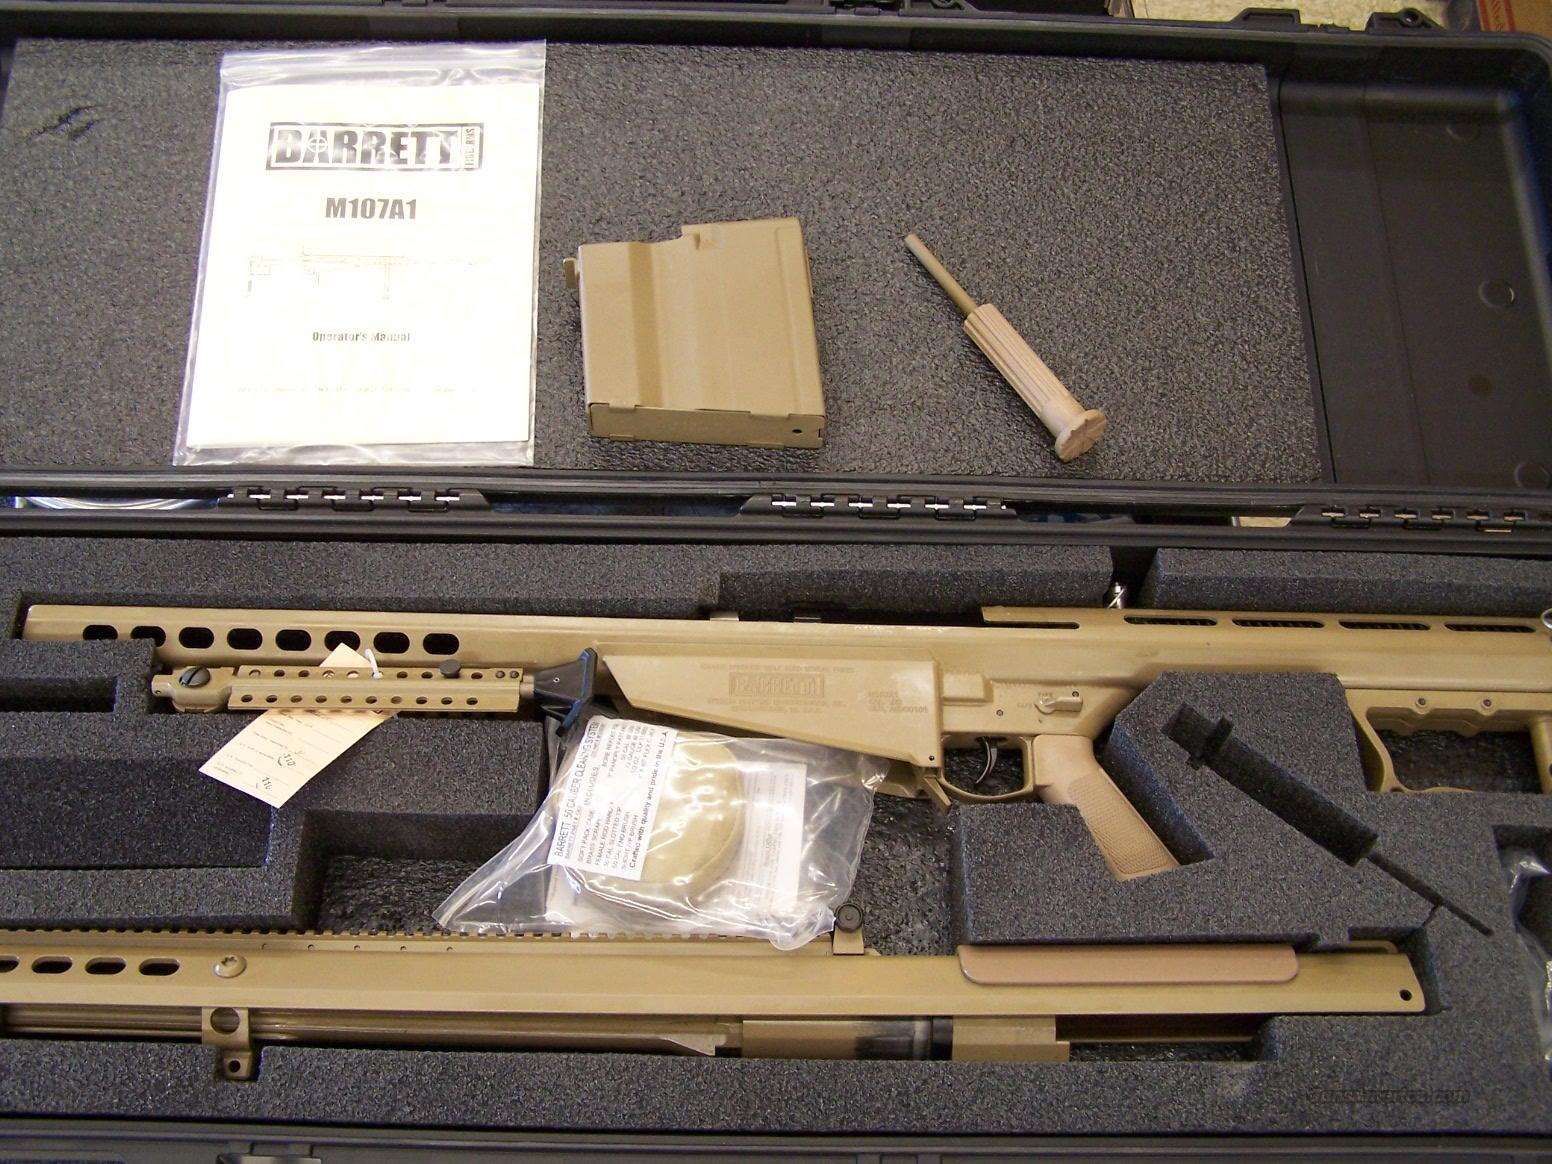 "Barrett M107A1 .50 BMG 29"" barrel with Pelican Case(13313)  Guns > Rifles > Barrett Rifles"